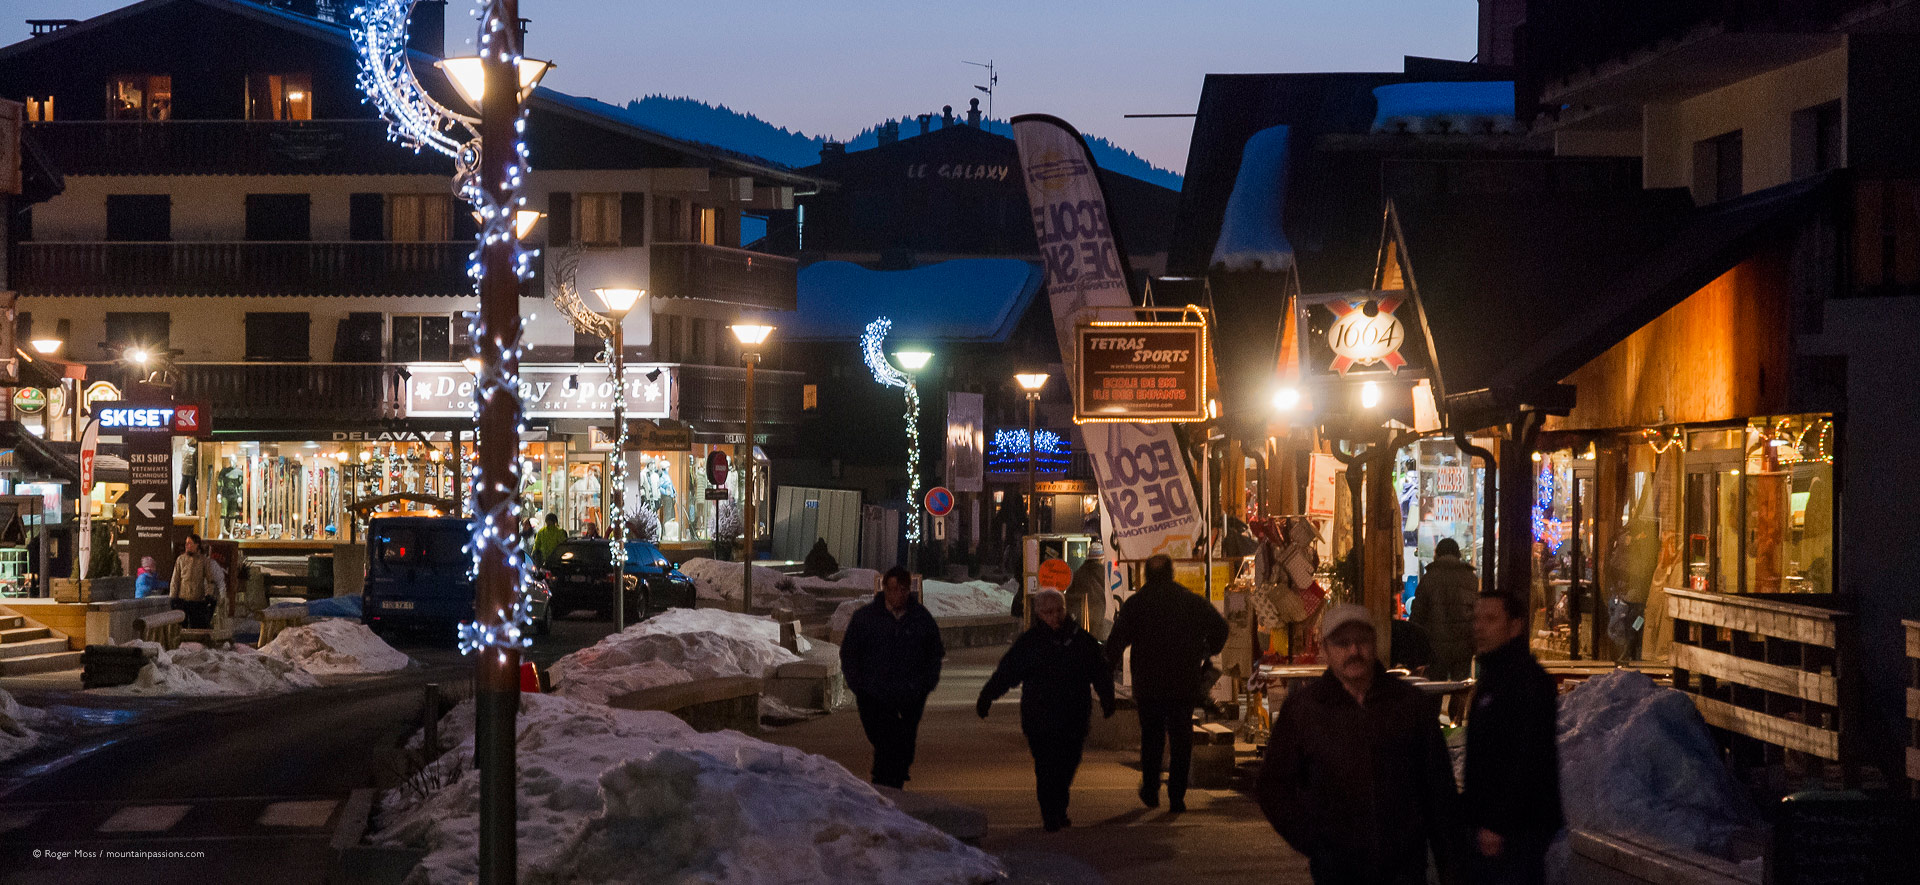 Visitors in village centre at dusk, with boutiques and ski shops.